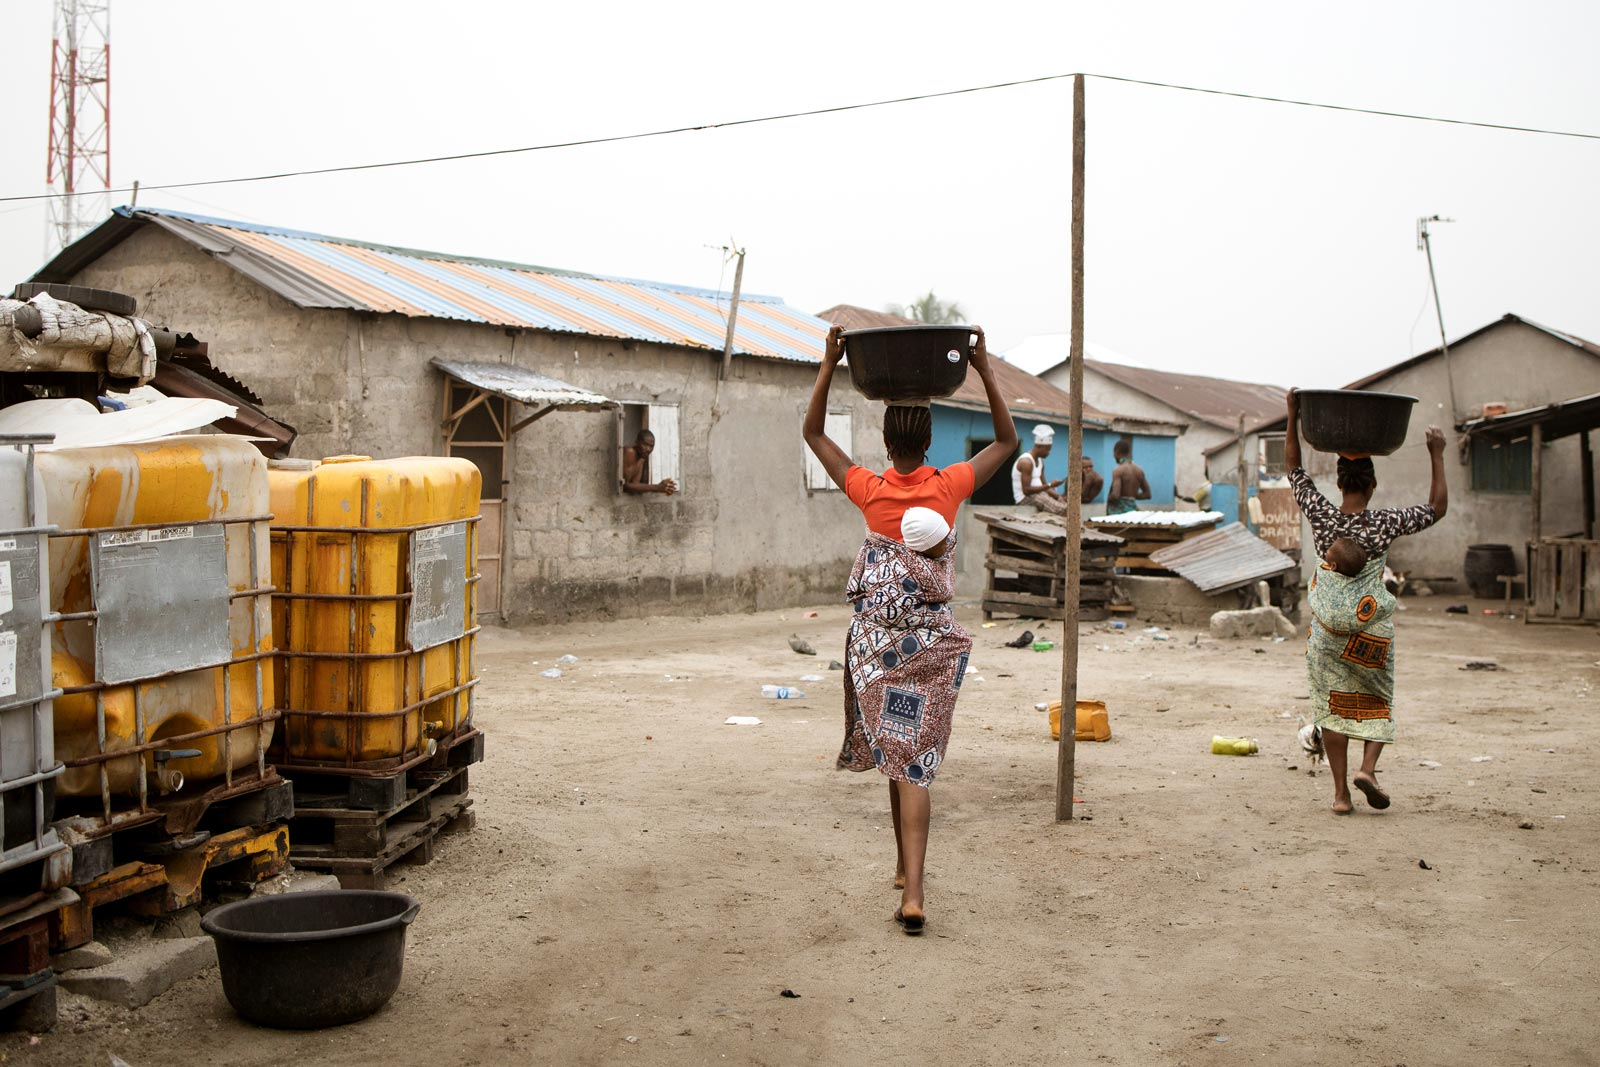 Two women, each carrying a baby on their back, balance buckets filled with water on top of their head as they walk past two large yellow water tanks.